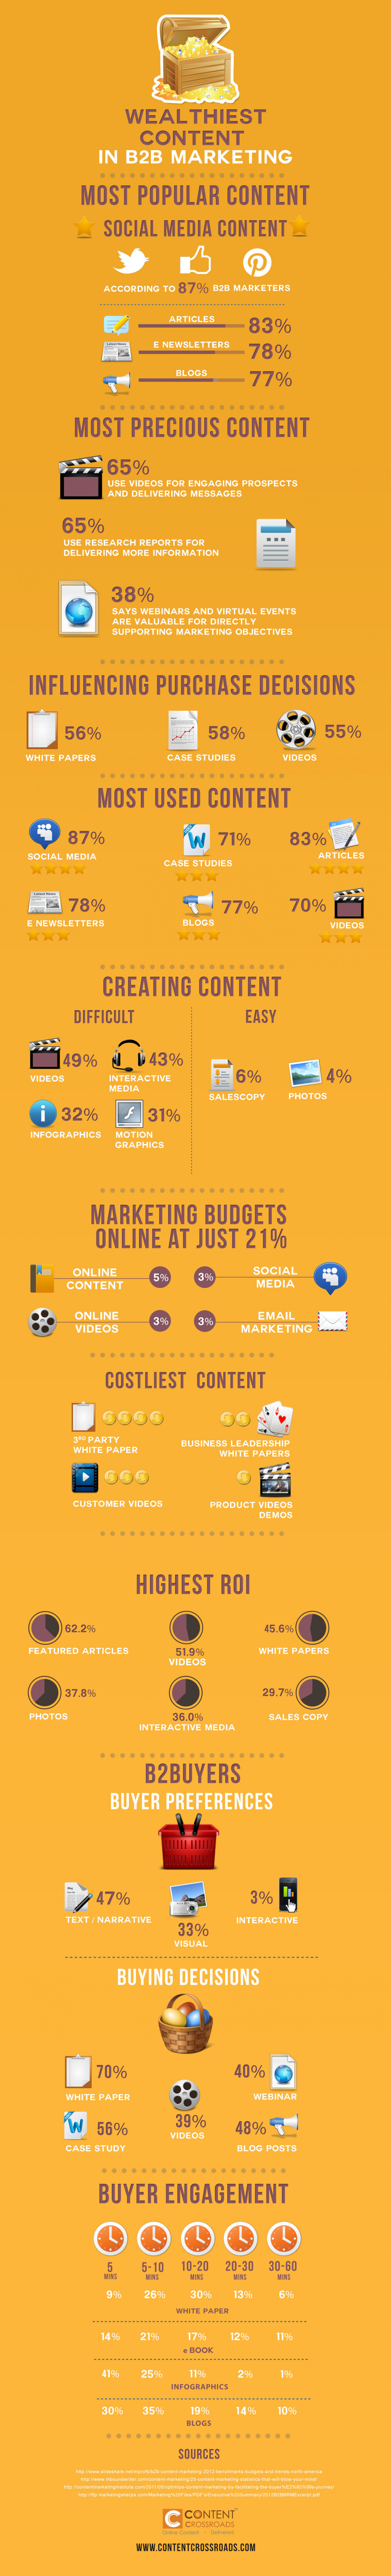 The wealthiest content in B2B marketing Infographic